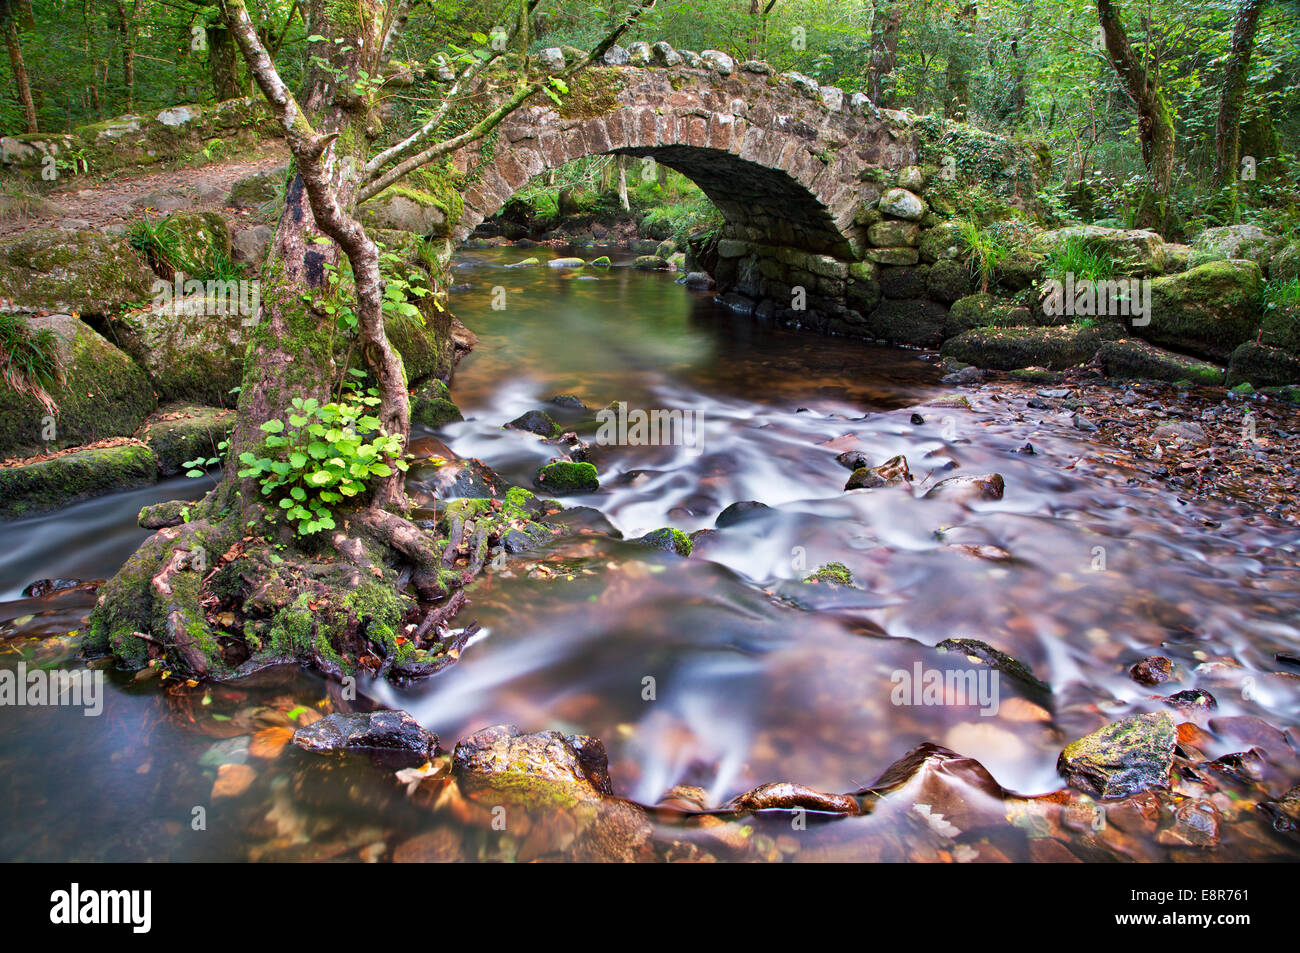 The river Bovey flowing under old stone bridge in Devon, England - Stock Image